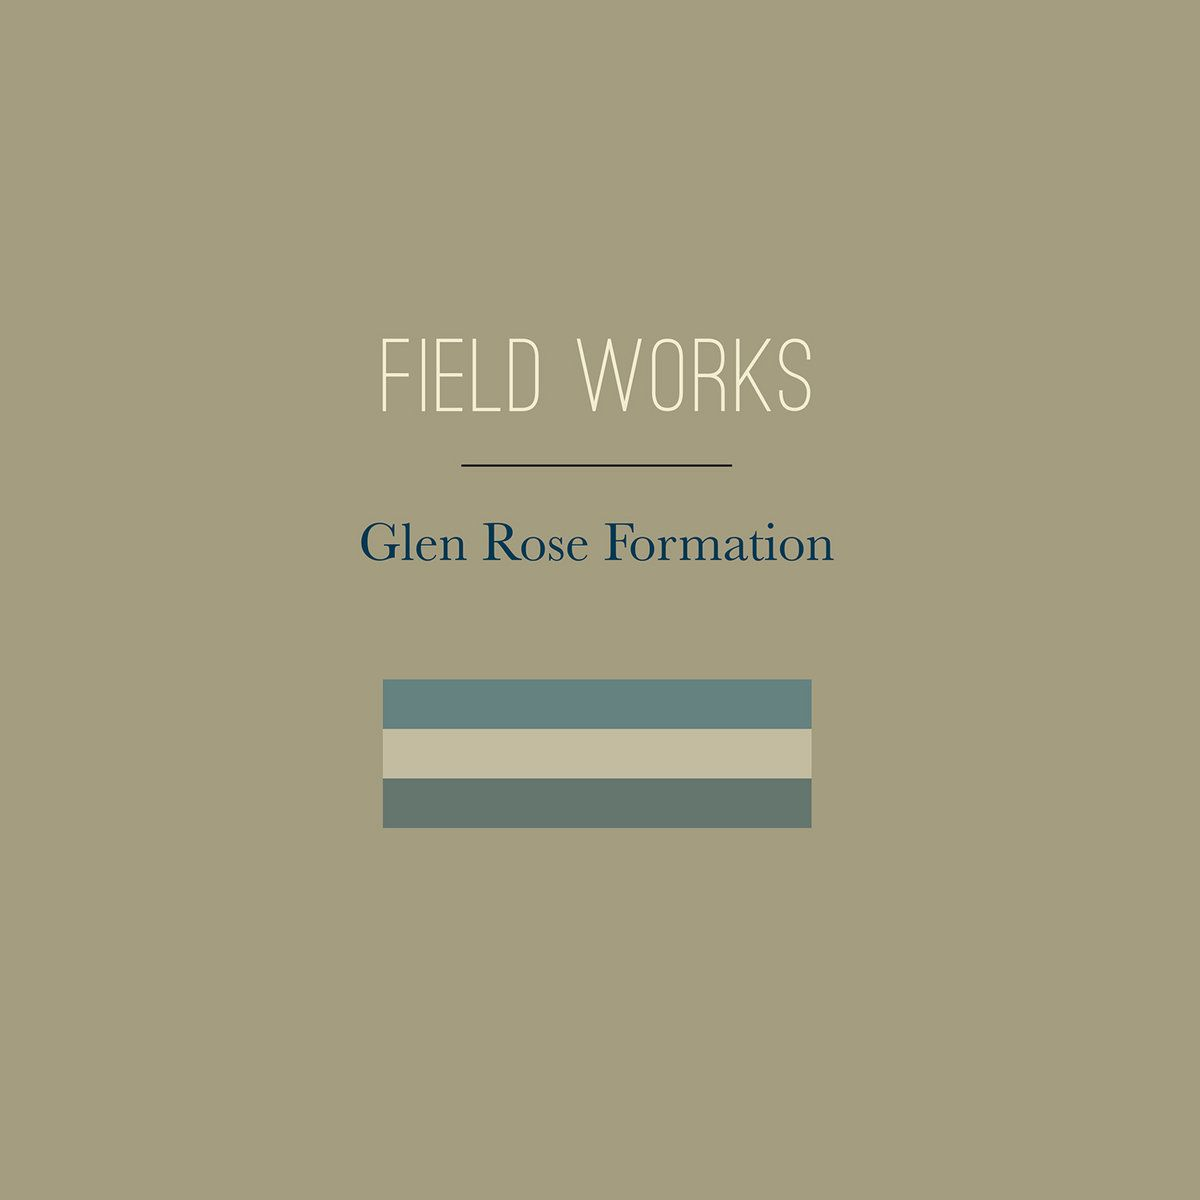 Glen Rose- remix of